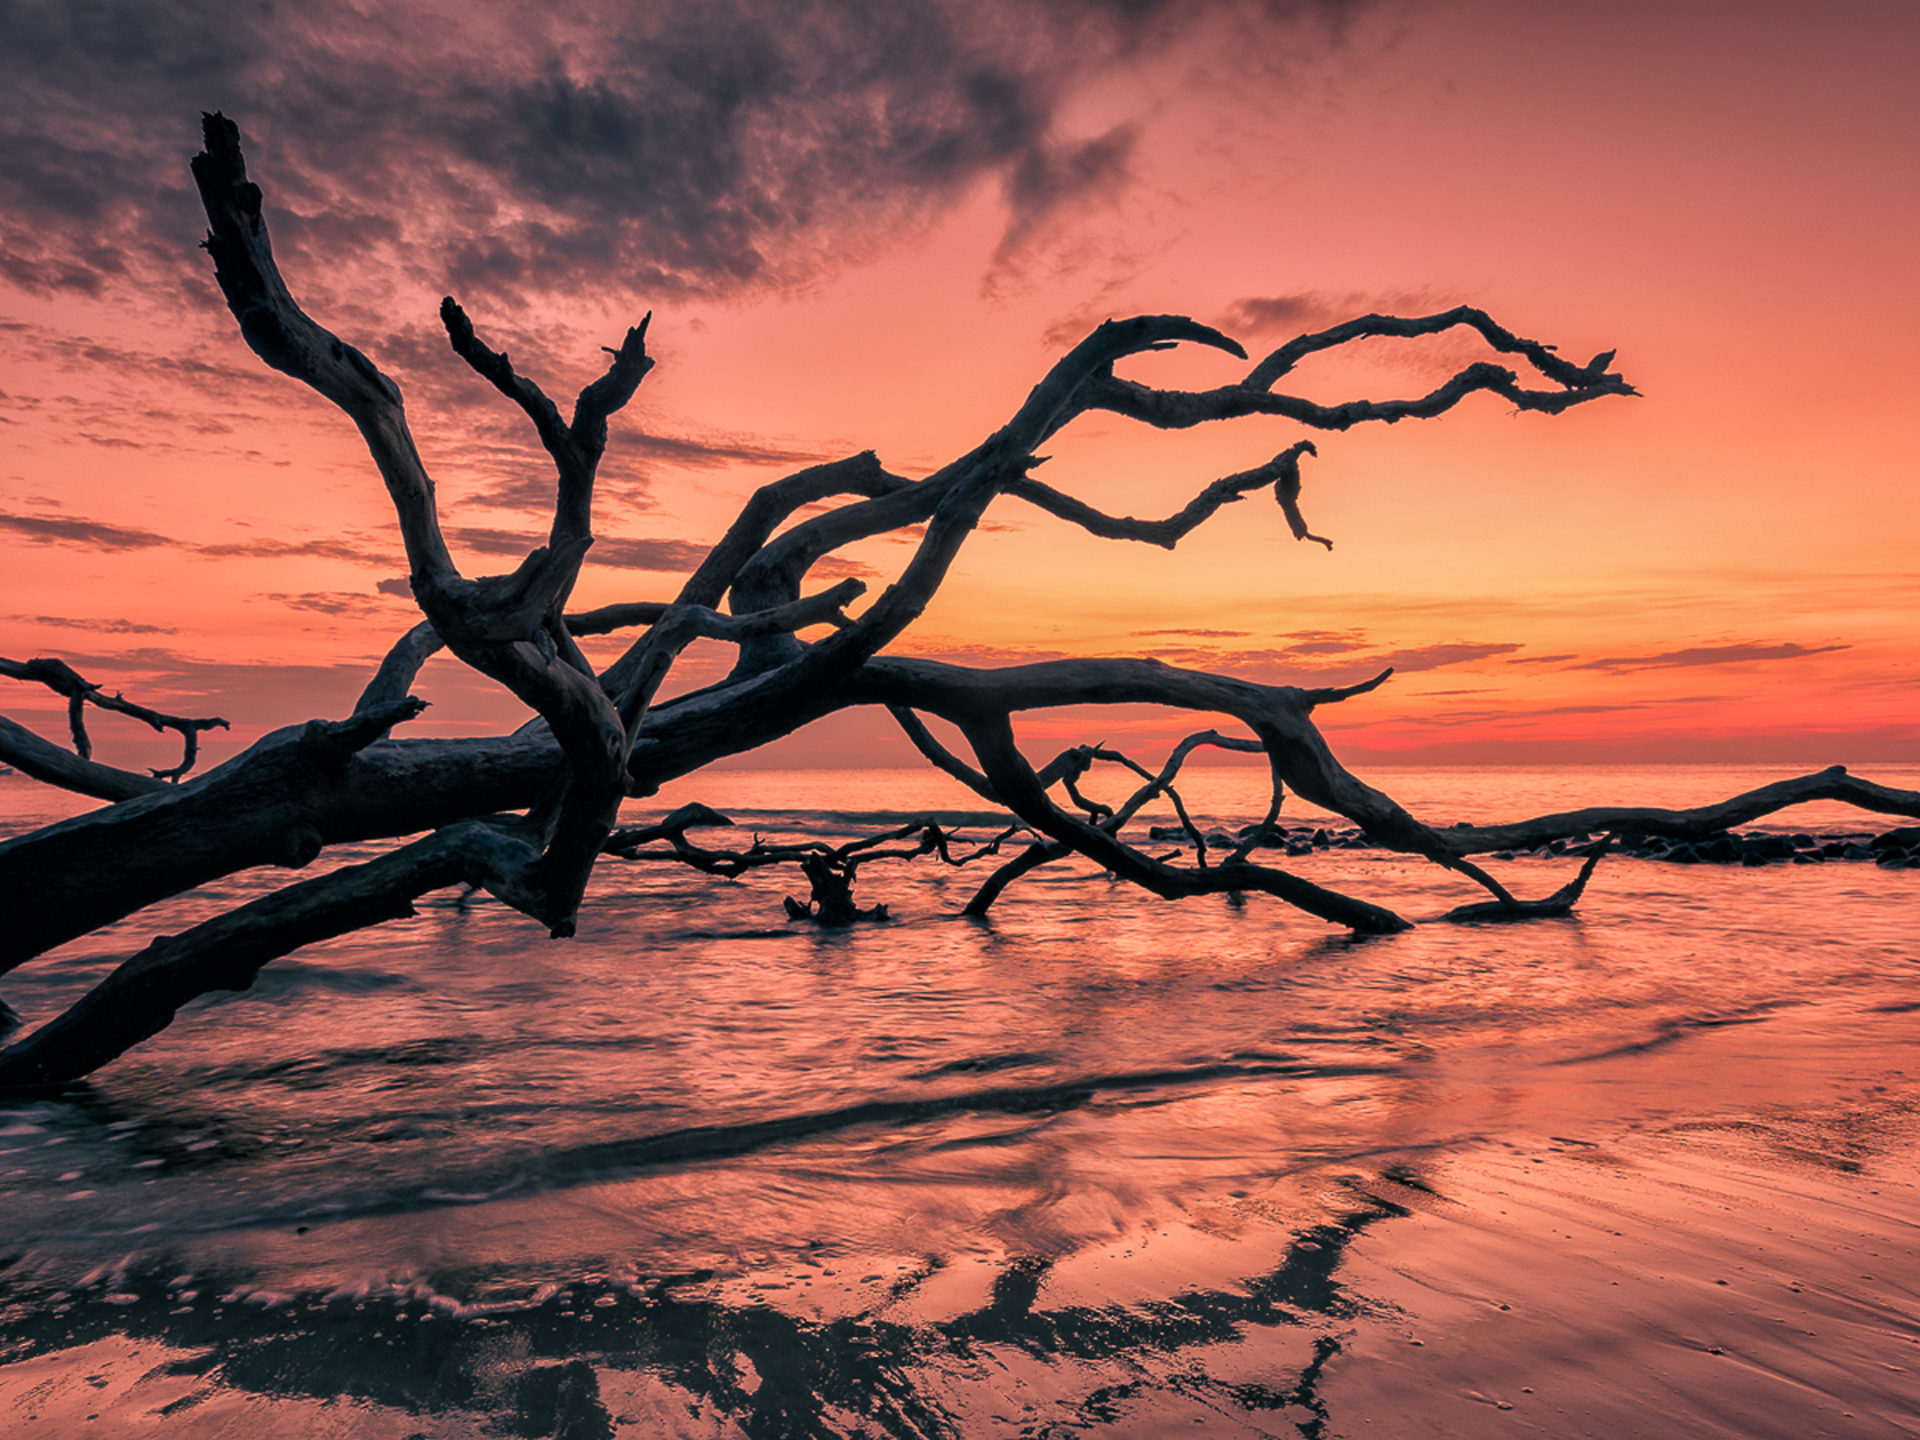 Red Wallpaper Iphone 4 Sunset Red Sky Sea Beach Cial Tree Branches Beautiful Hd